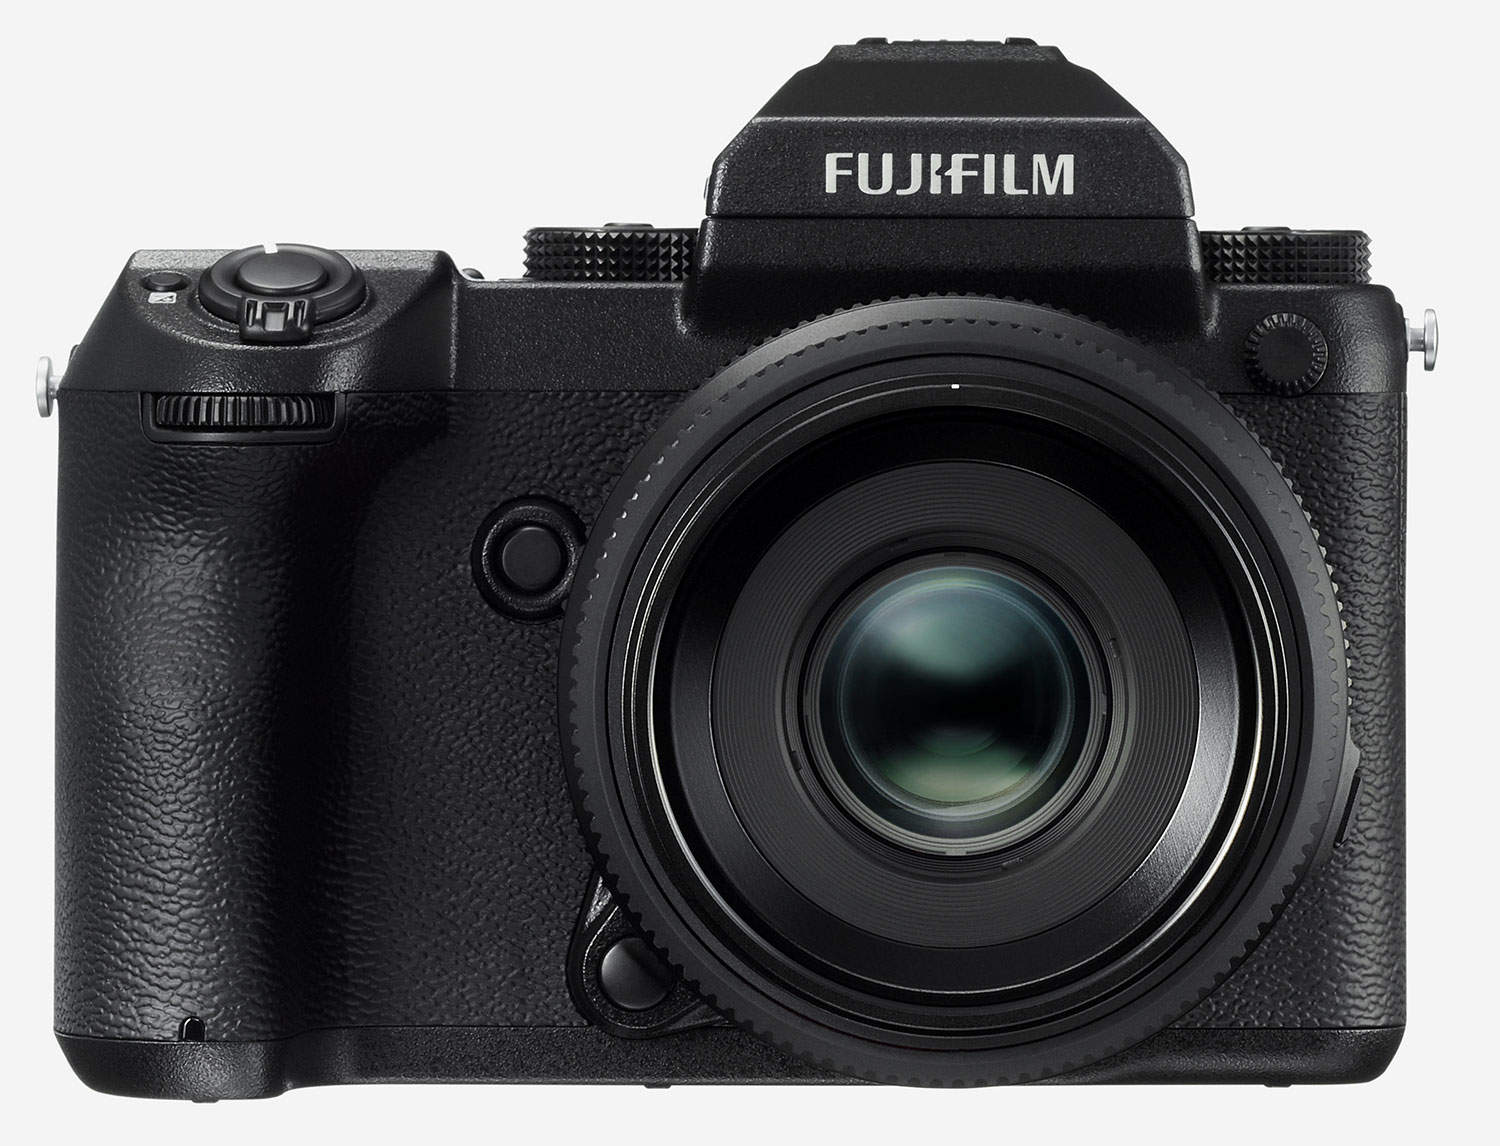 Fujifilm caps off a big year with the GFX 50S digital medium format camera.